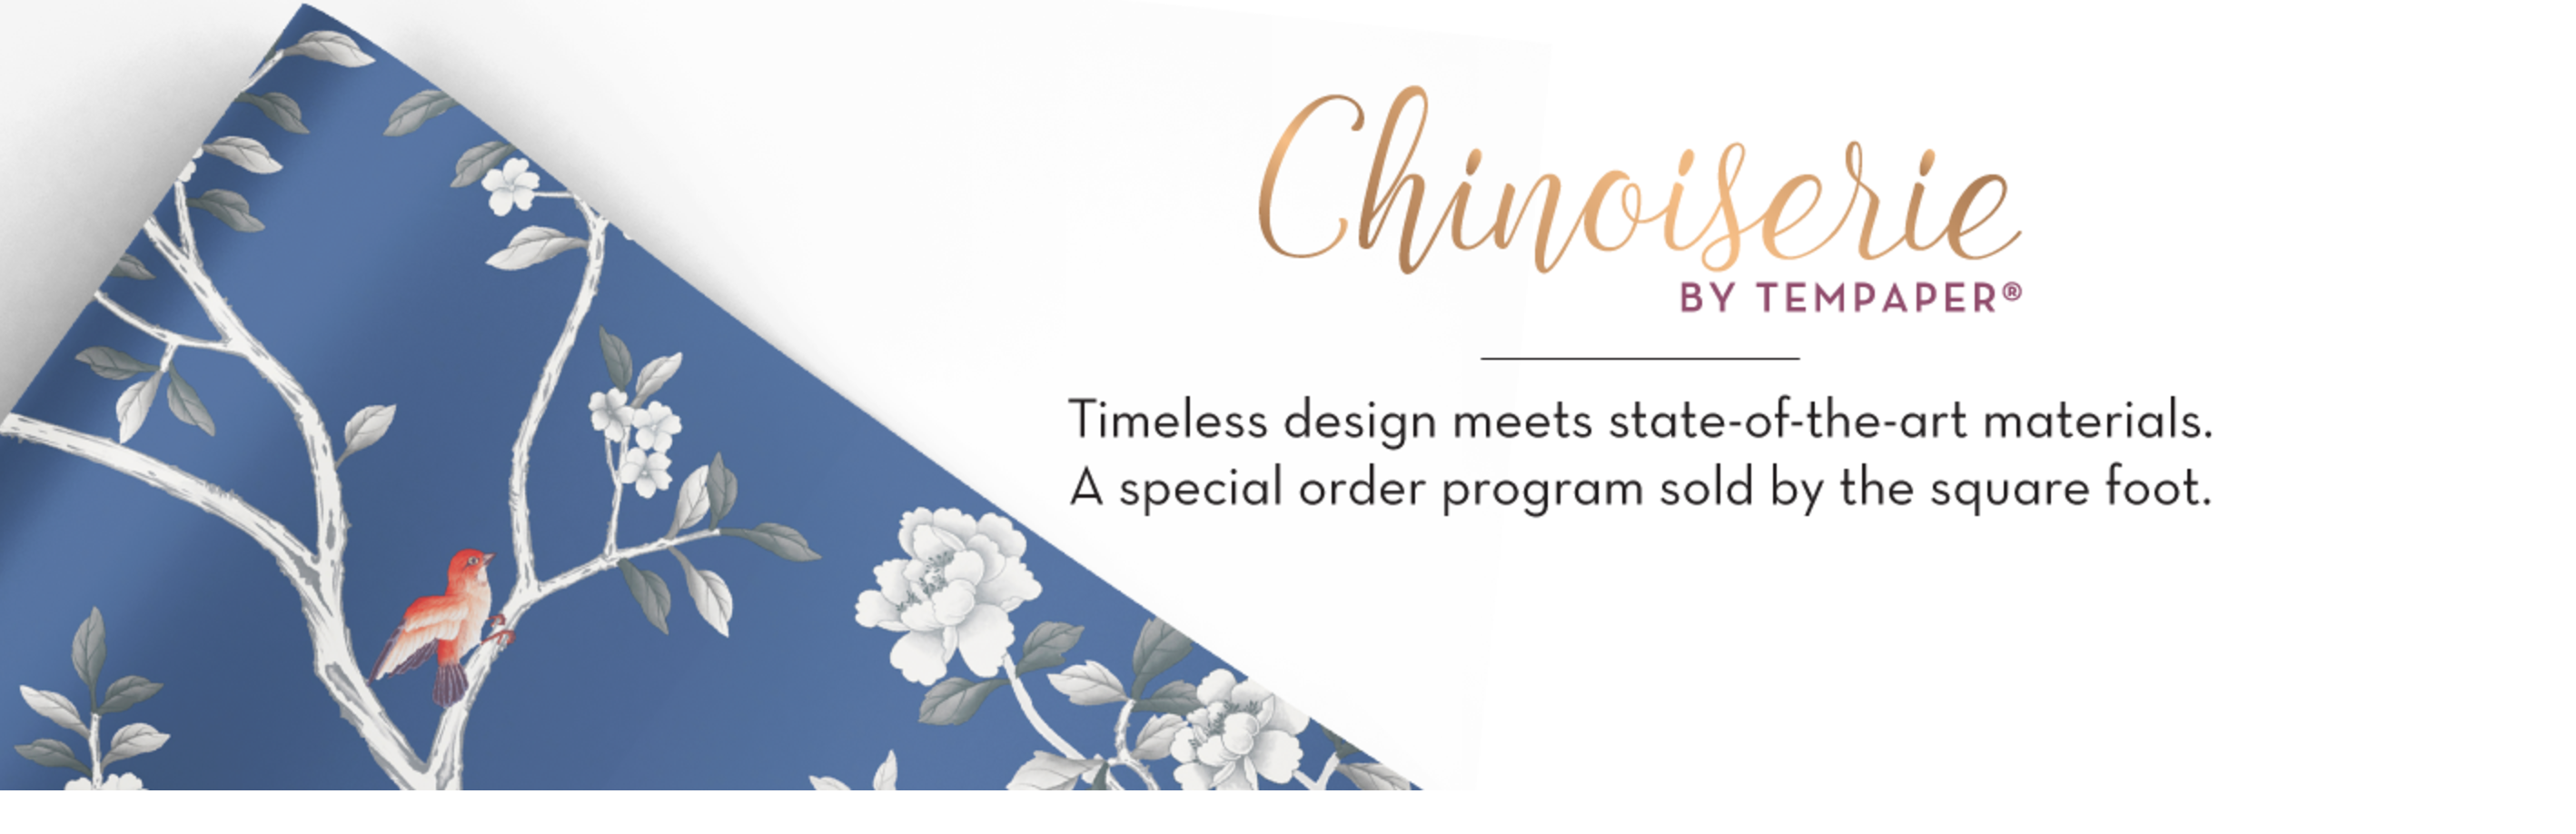 Chinoiserie by Tempaper